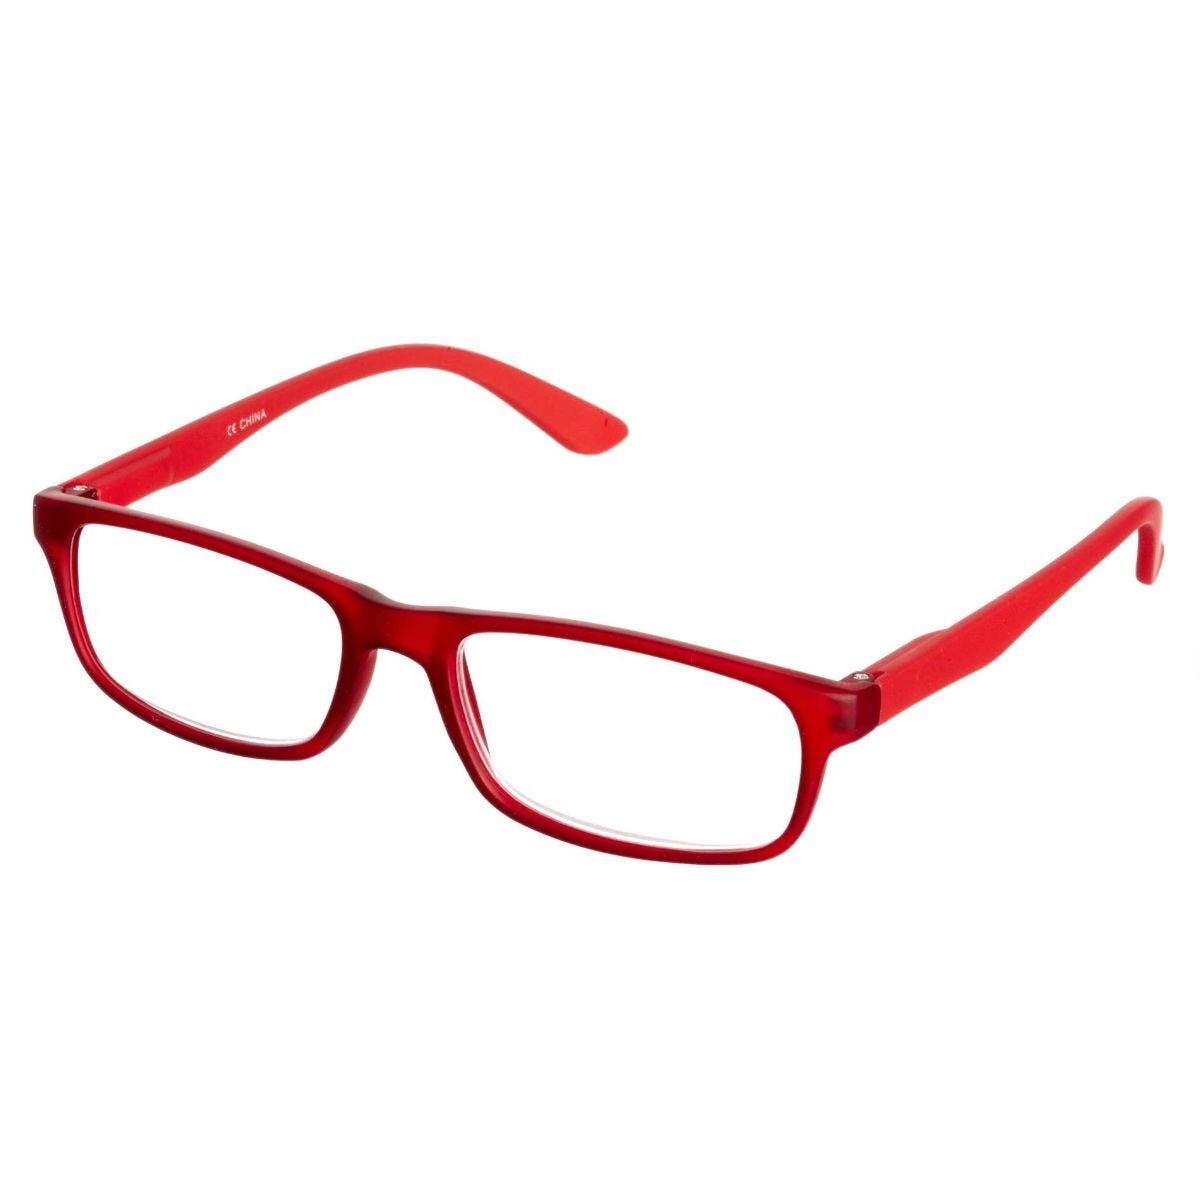 Ryman Reading Glasses + 2.0 Red Plastic Frame